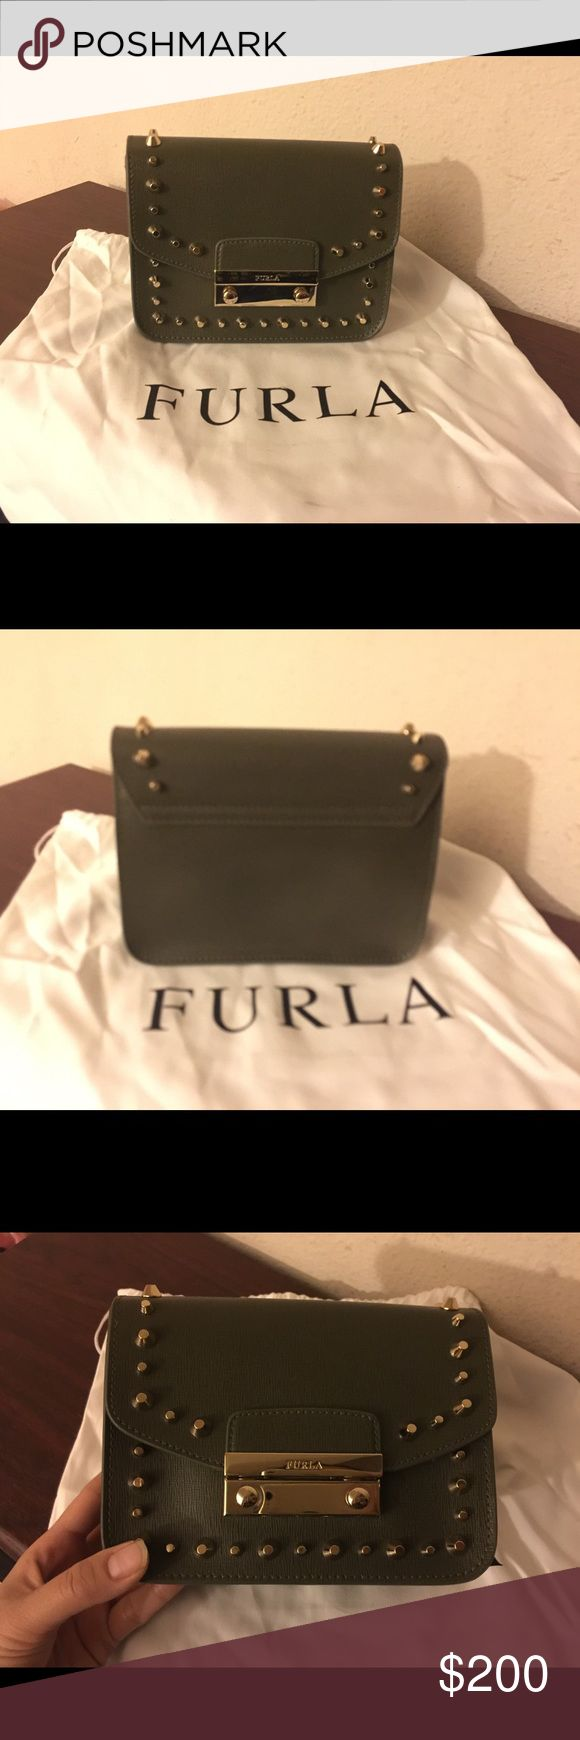 Furla Julia mini stud cross body bag Brand new. I bought it from gilt.com Just too small for my liking. It will fit regular iPhone. Comes with dust bag. The dust bag have stain and I receive it like that. It was dirty when I got it.  Super cute though. You can remove the strap and use it as a clutch. It in salvia color. It like dark green. Furla Bags Crossbody Bags